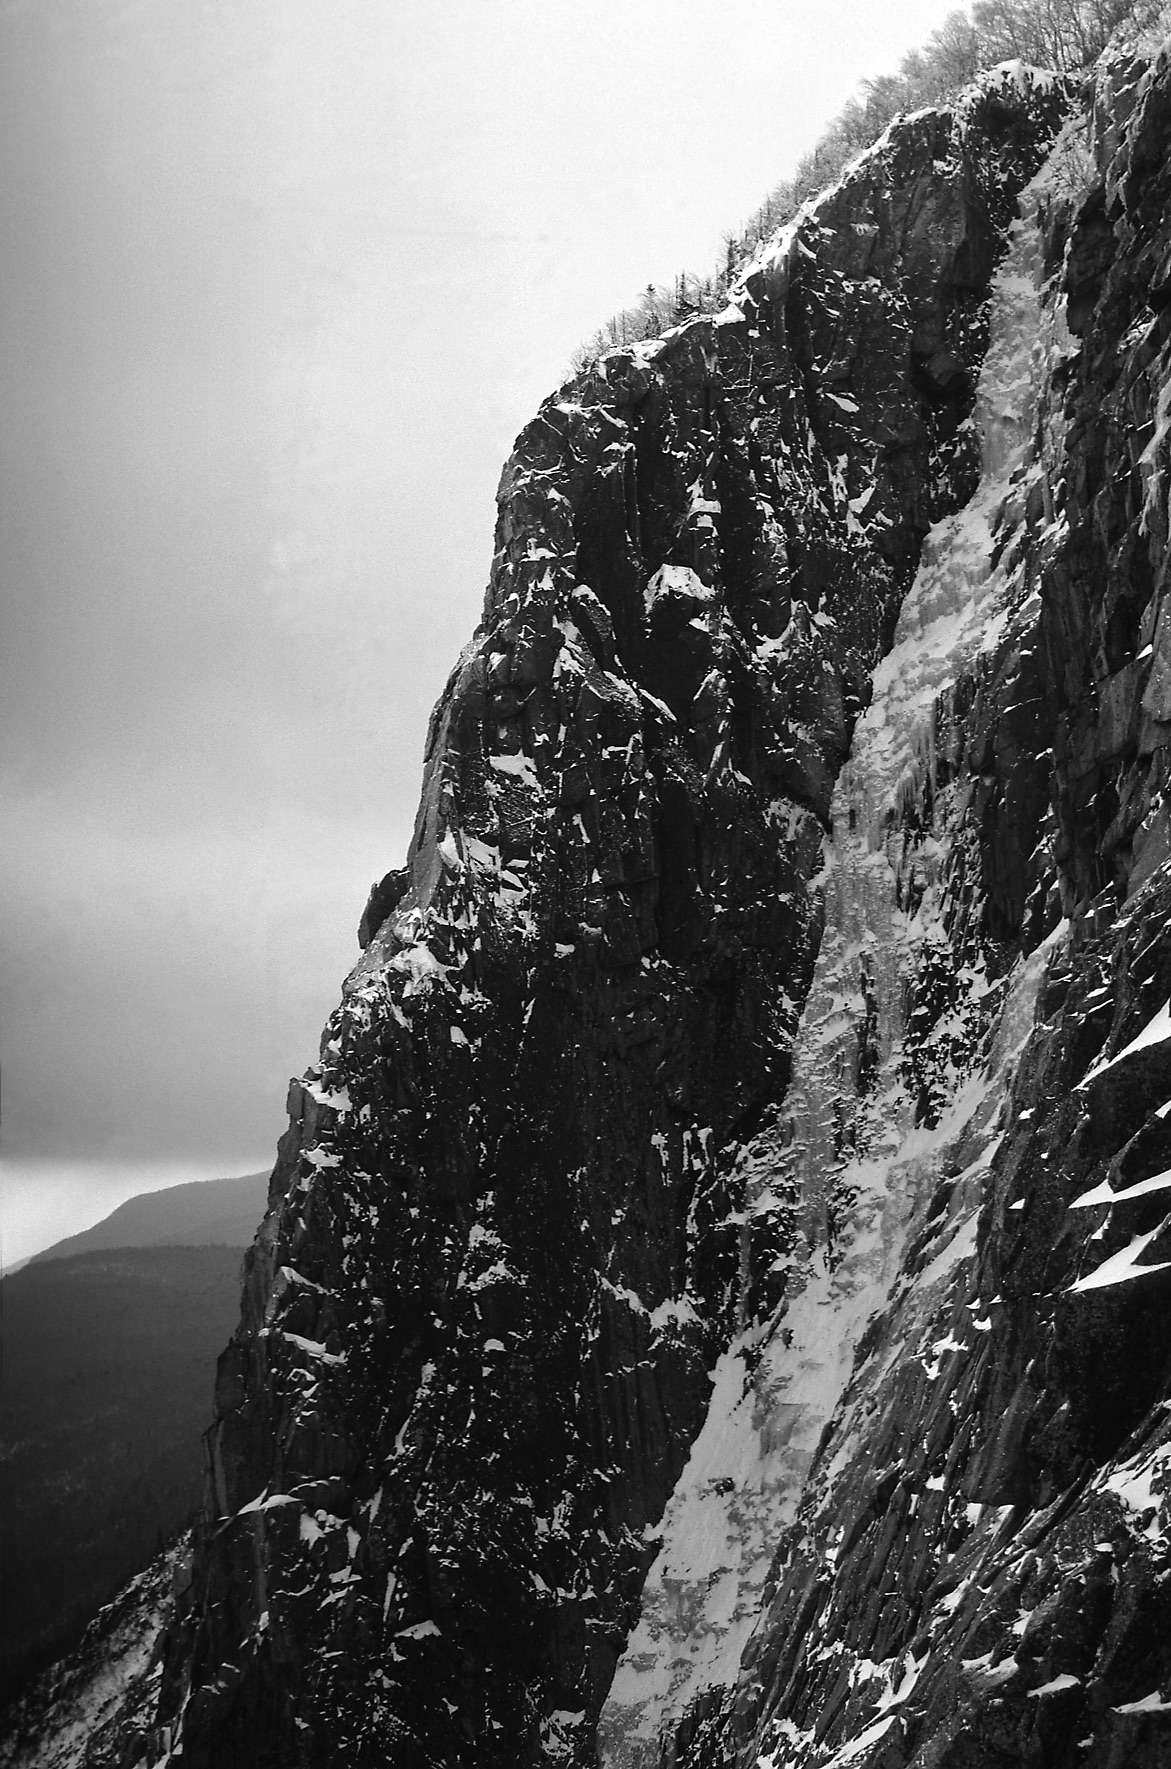 The Black Dike, Cannon Cliff, New Hampshire, 1970s. Laura Waterman was the first woman to climb the route, four years after John Bouchard's 1971 first ascent. [Photo] Ed Webster